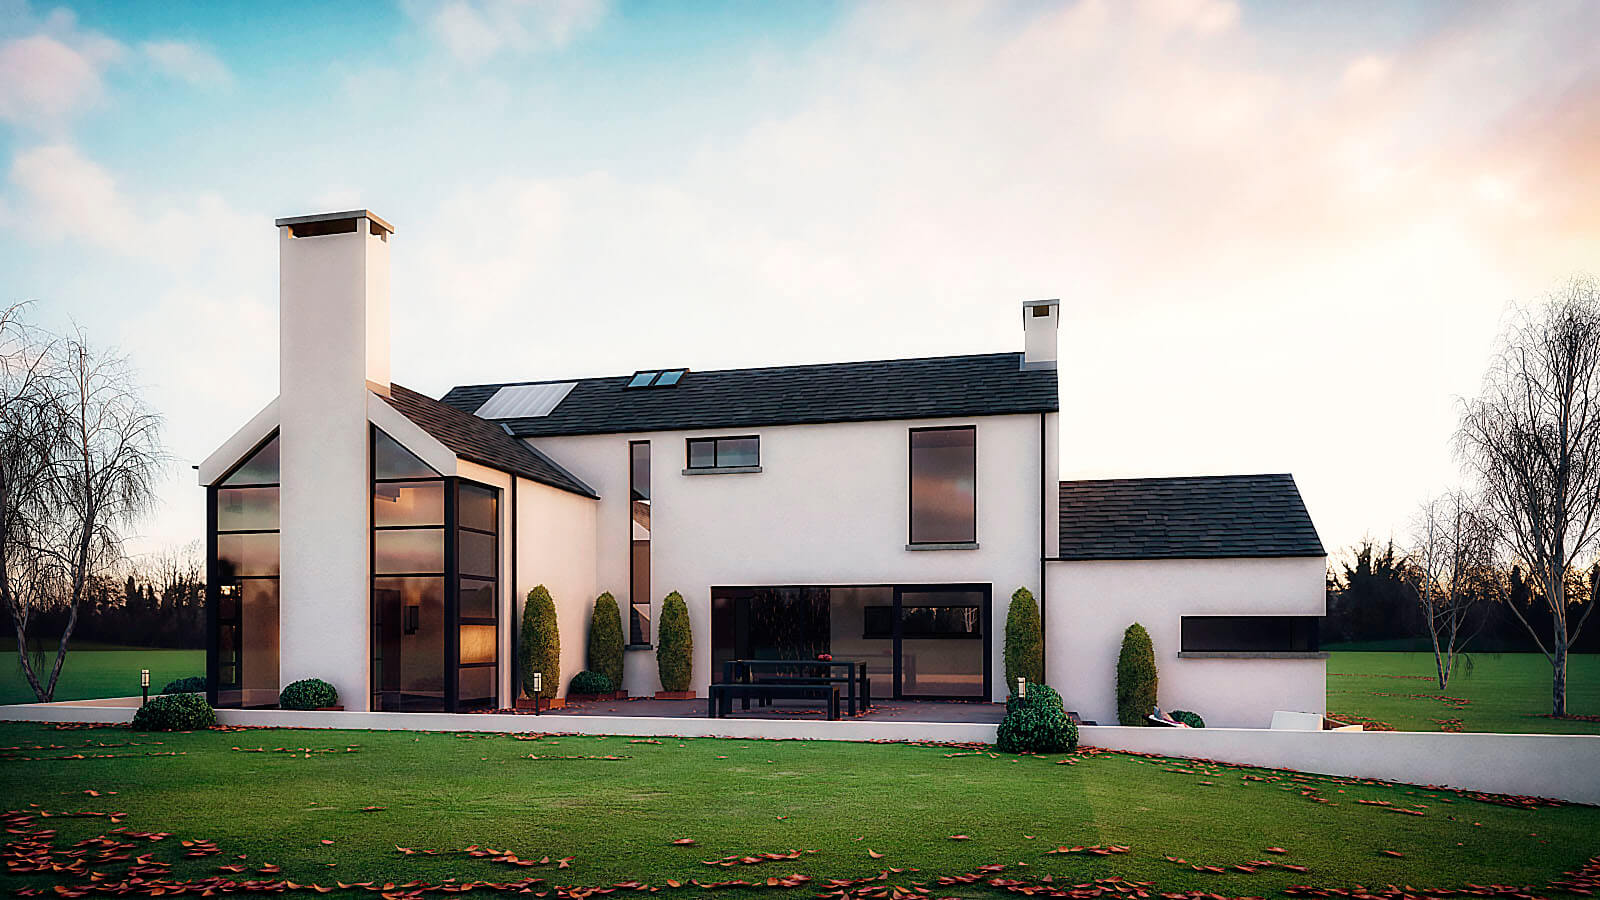 Tips for building a house in Ireland from abroad